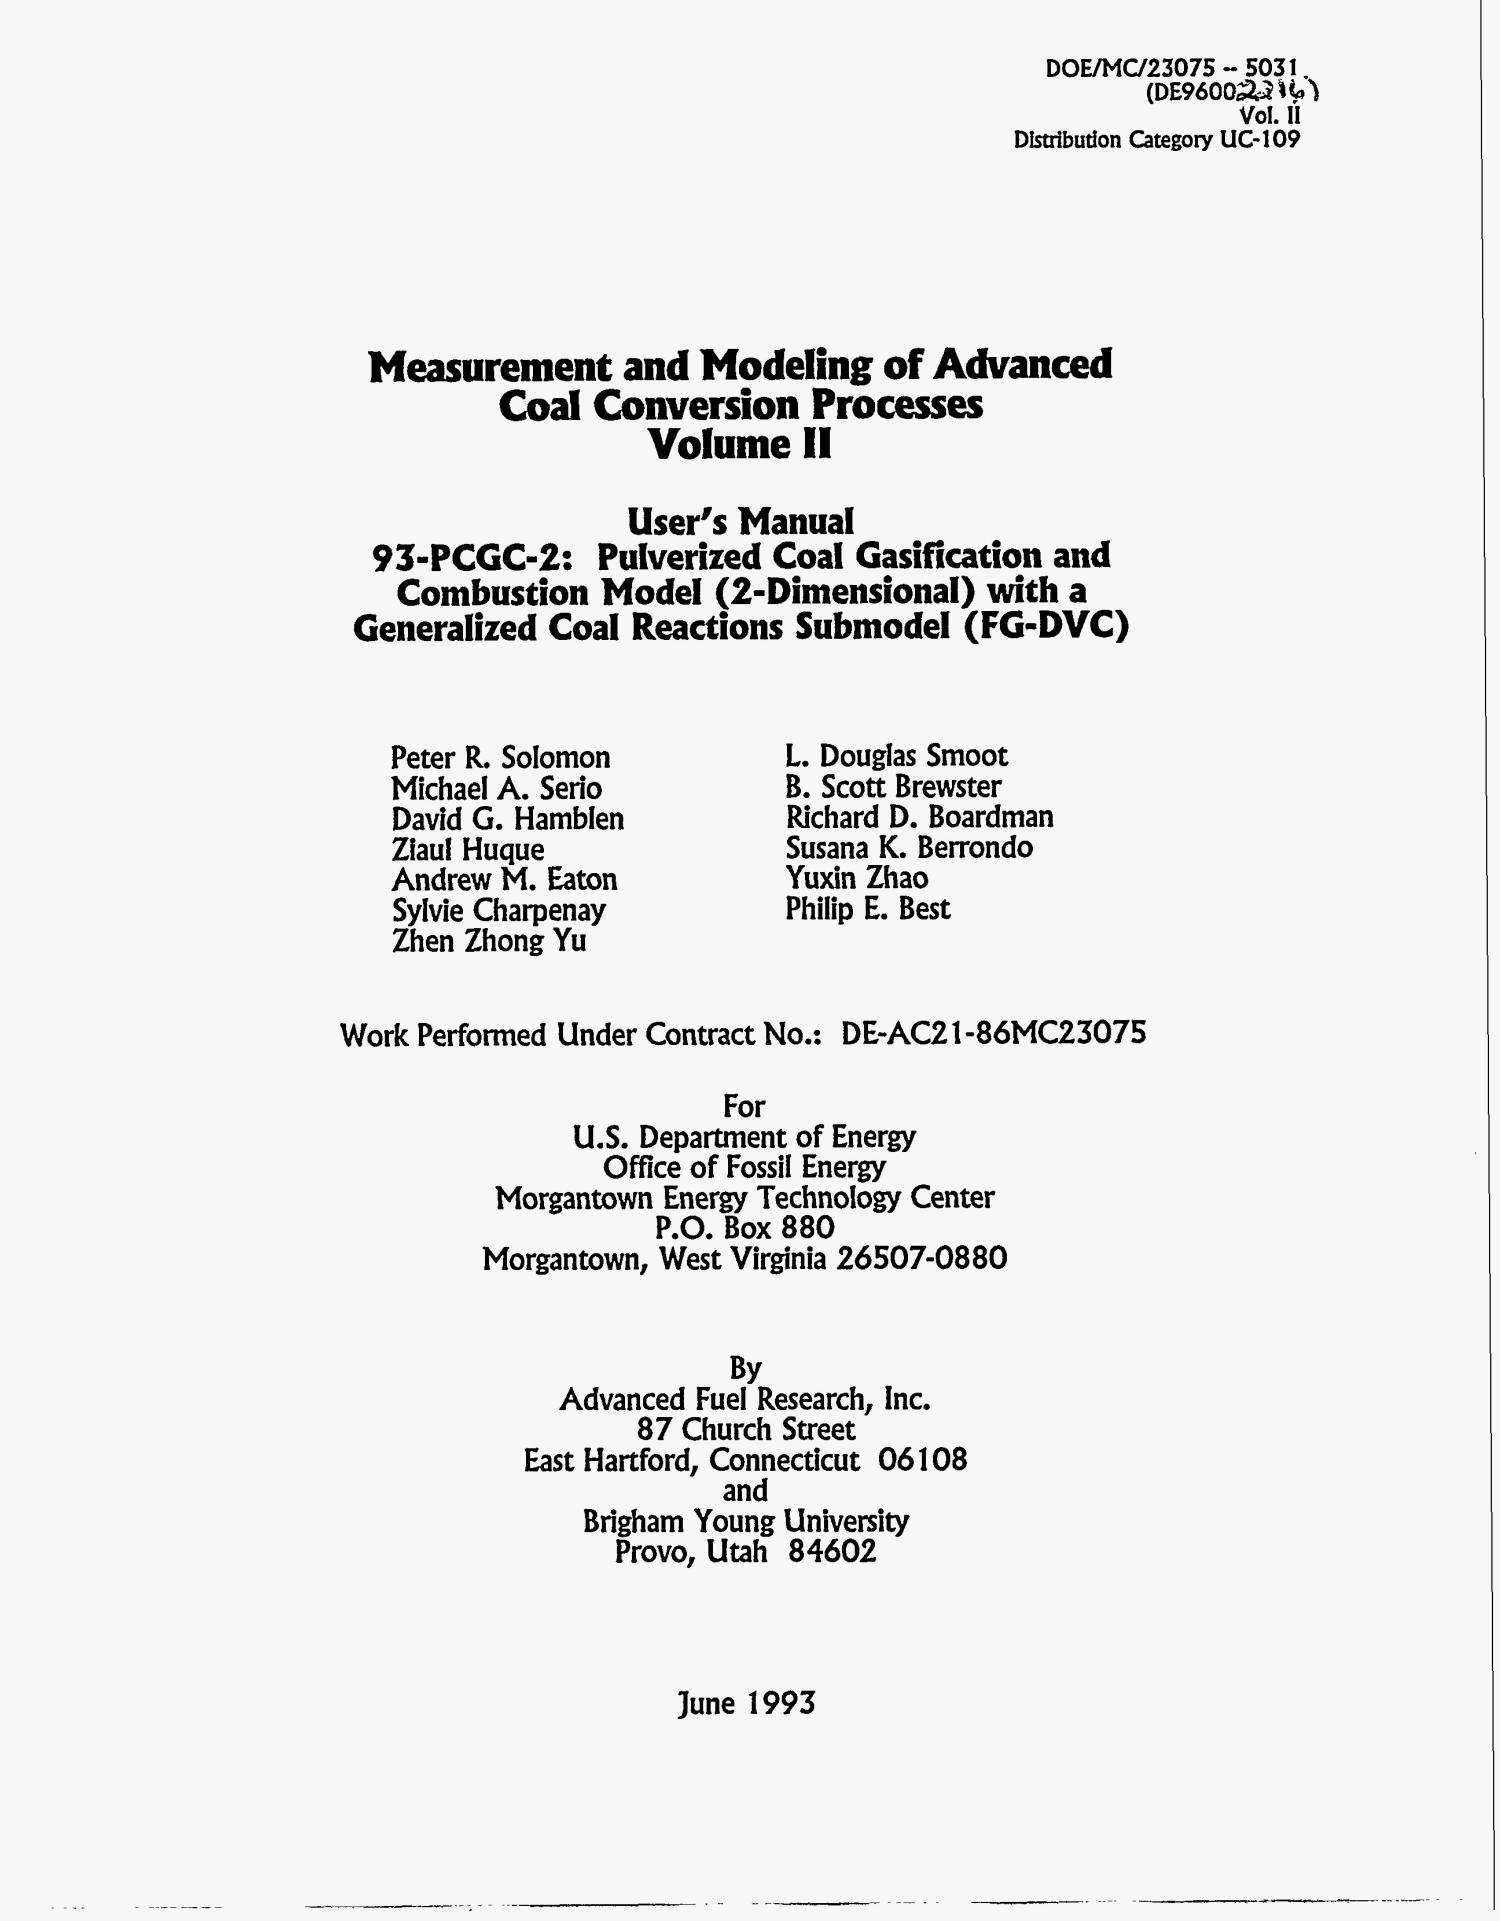 Measurement and modeling of advanced coal conversion processes, Volume II                                                                                                      [Sequence #]: 4 of 719